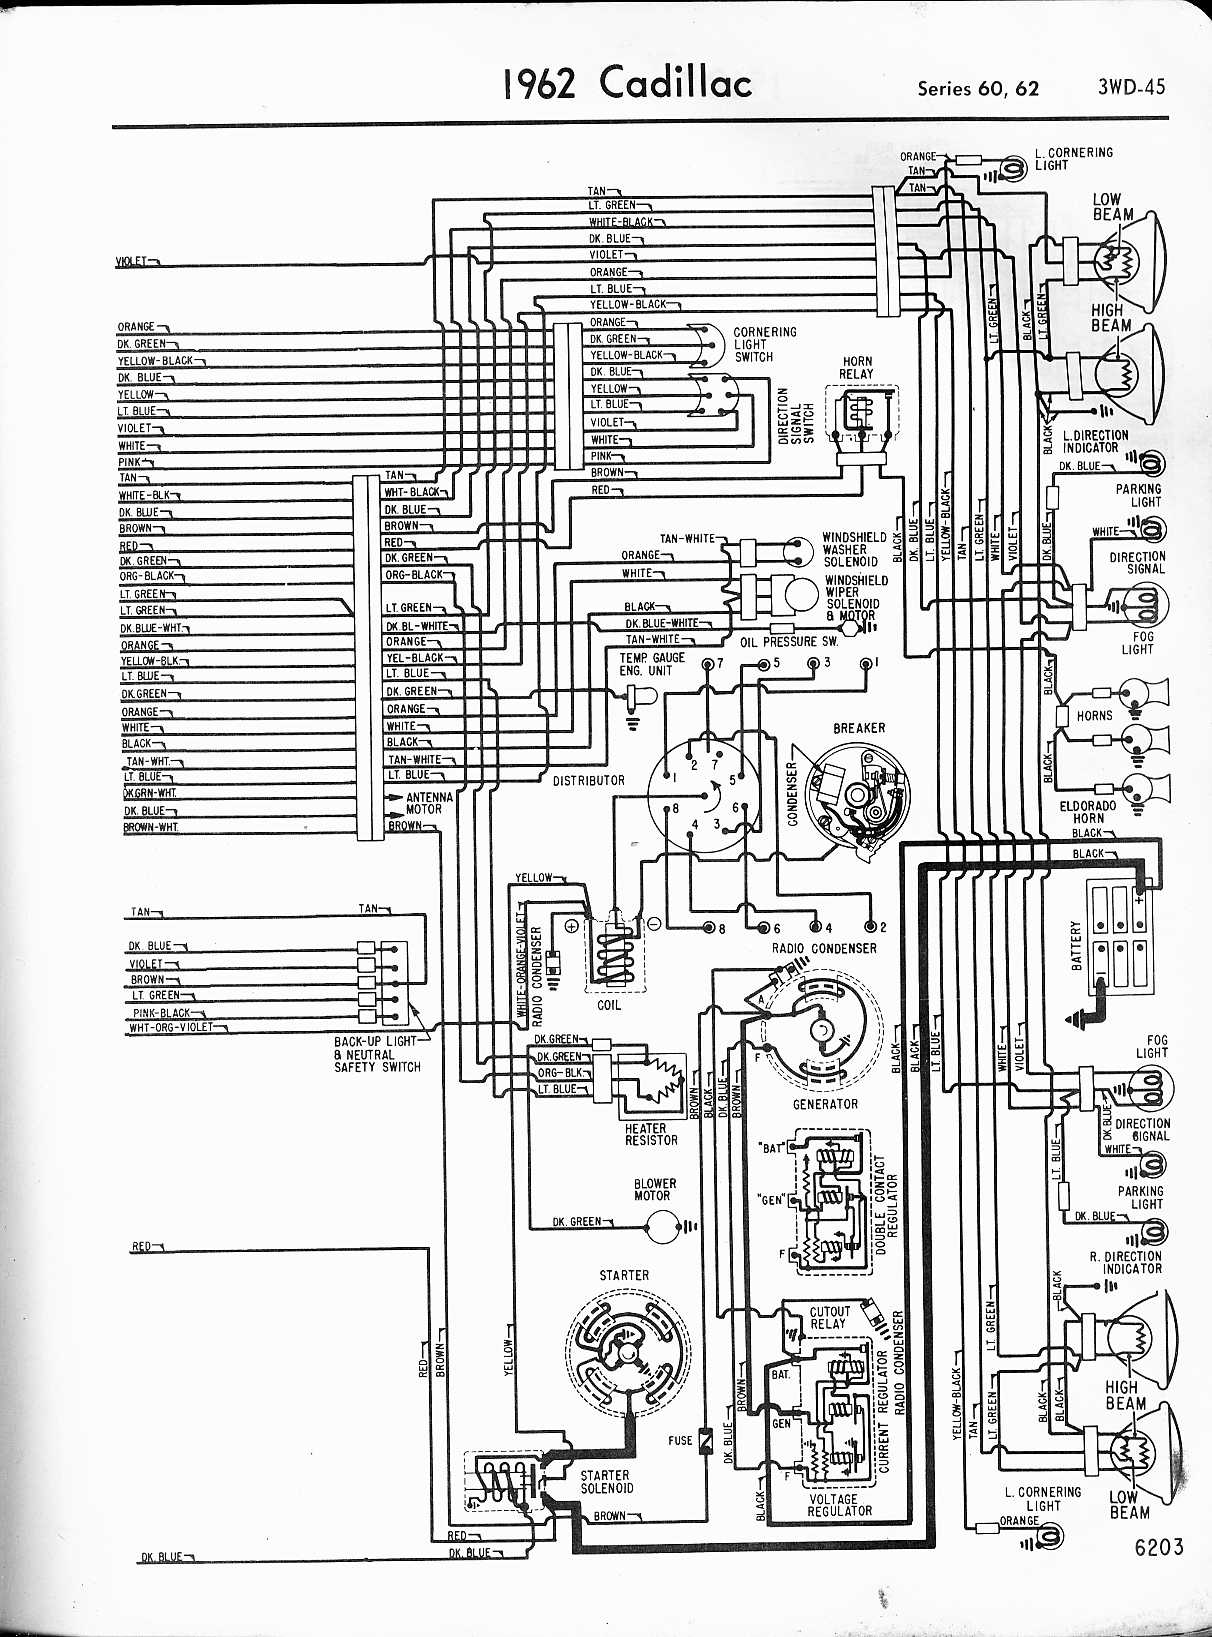 1955 cadillac series 62 wiring diagram product wiring diagrams u2022 rh genesisventures us